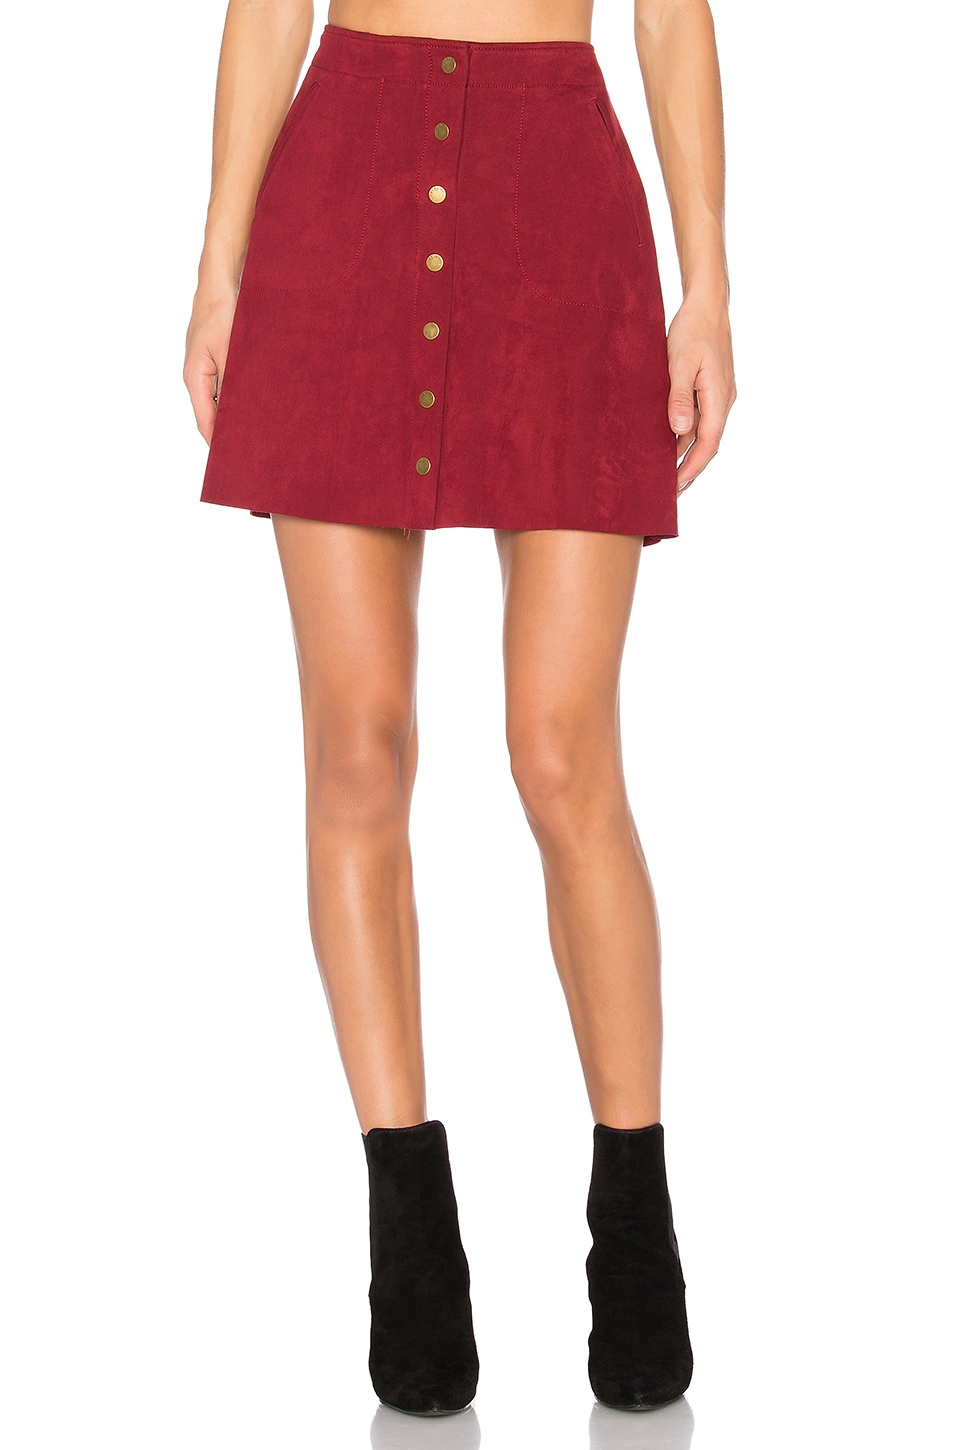 Level 99 Helen A-Line Skirt in Roselle